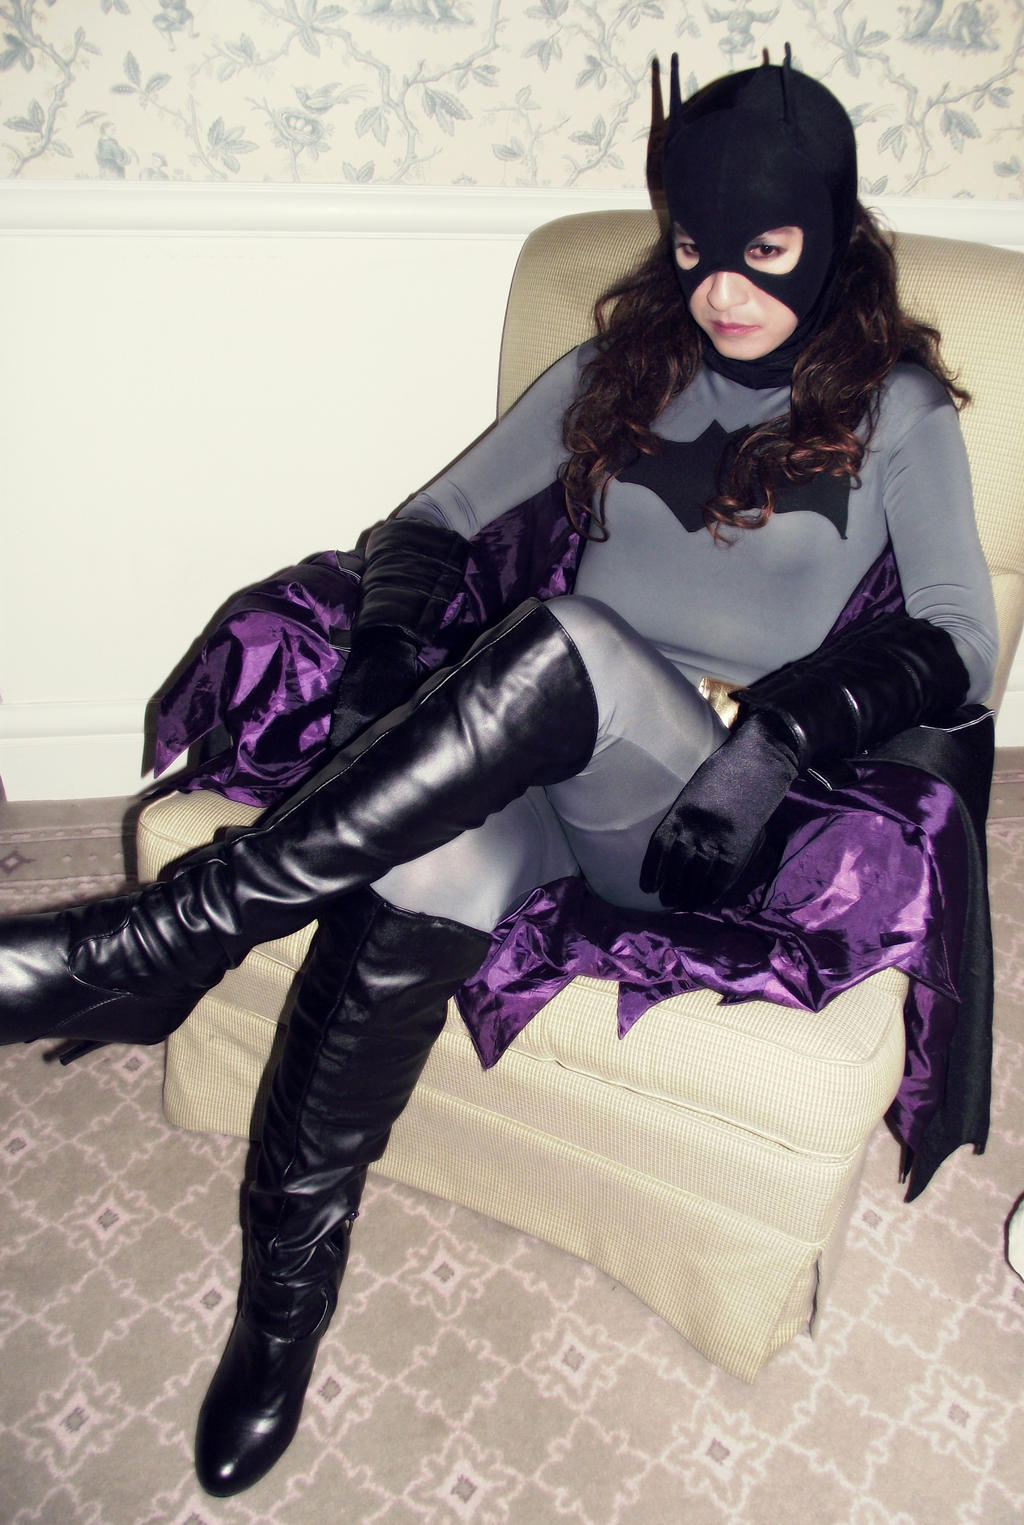 Young Justice Batgirl Cosplay - Repose by ozbattlechick